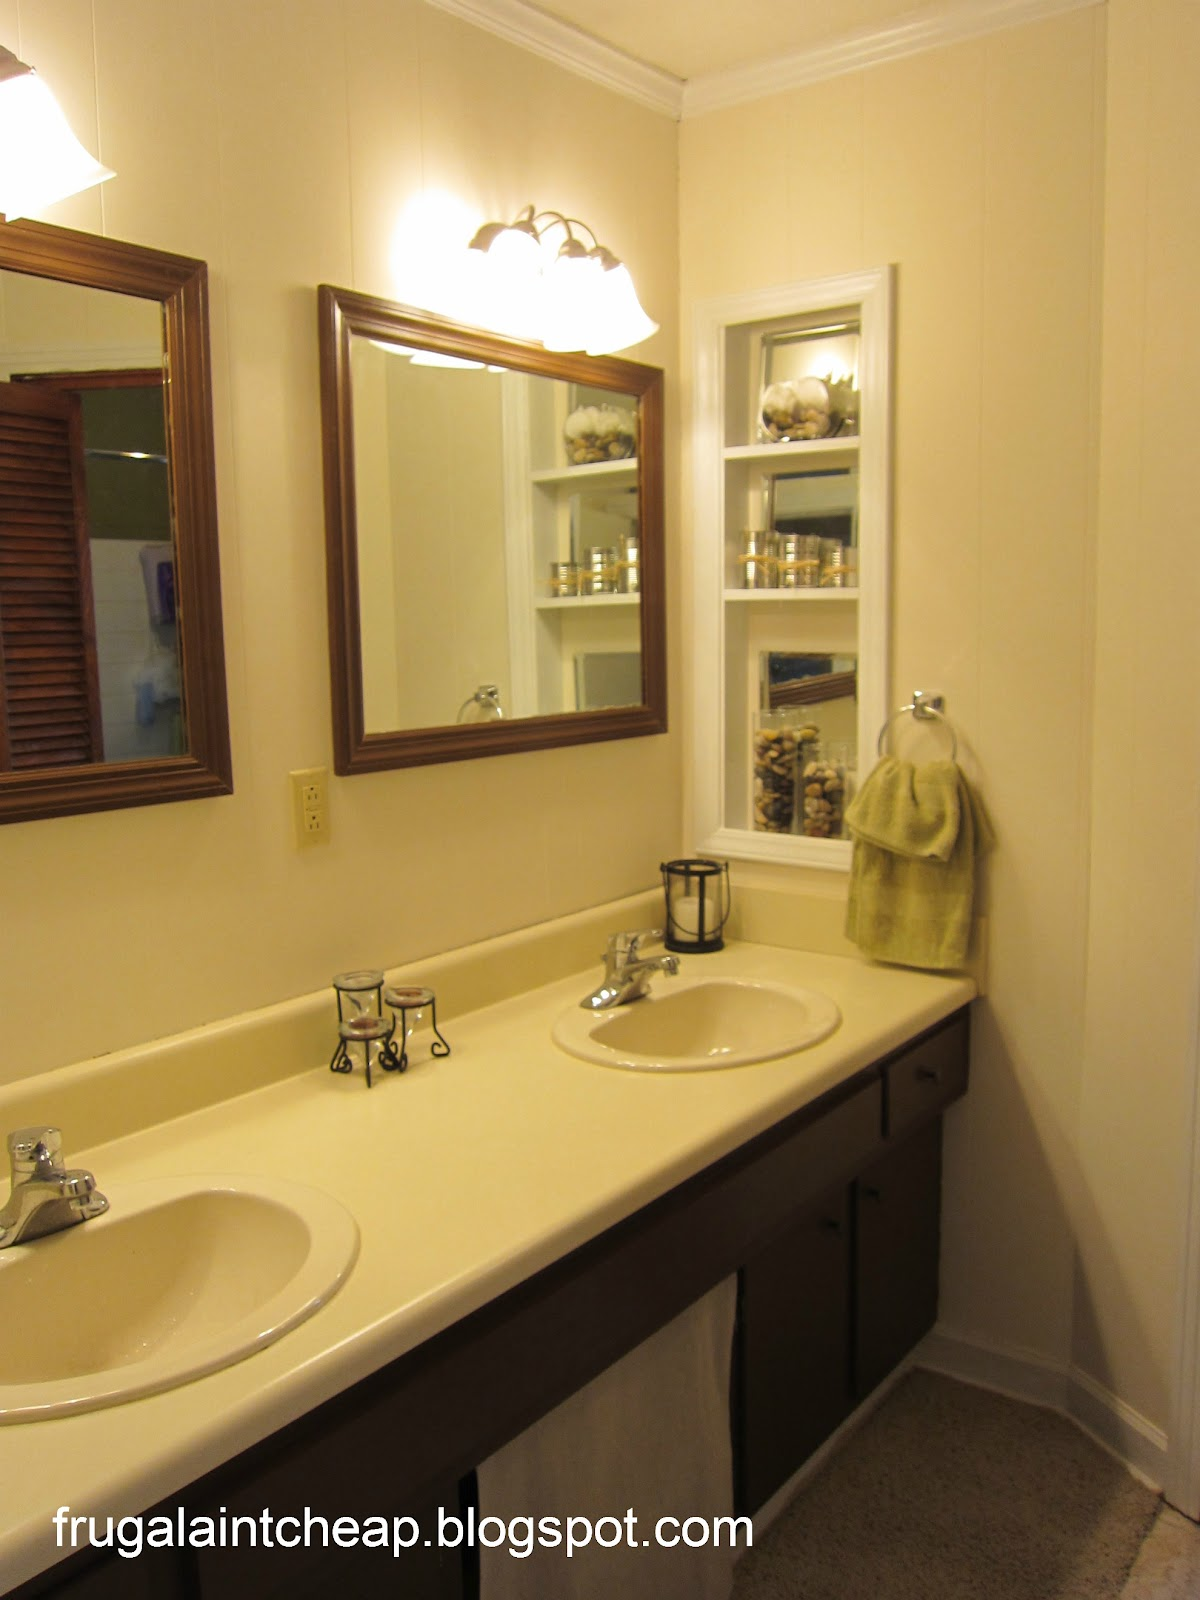 cheap bathroom remodeling ideas frugal ain t cheap bathroom remodel from 1966 to 2012 6590